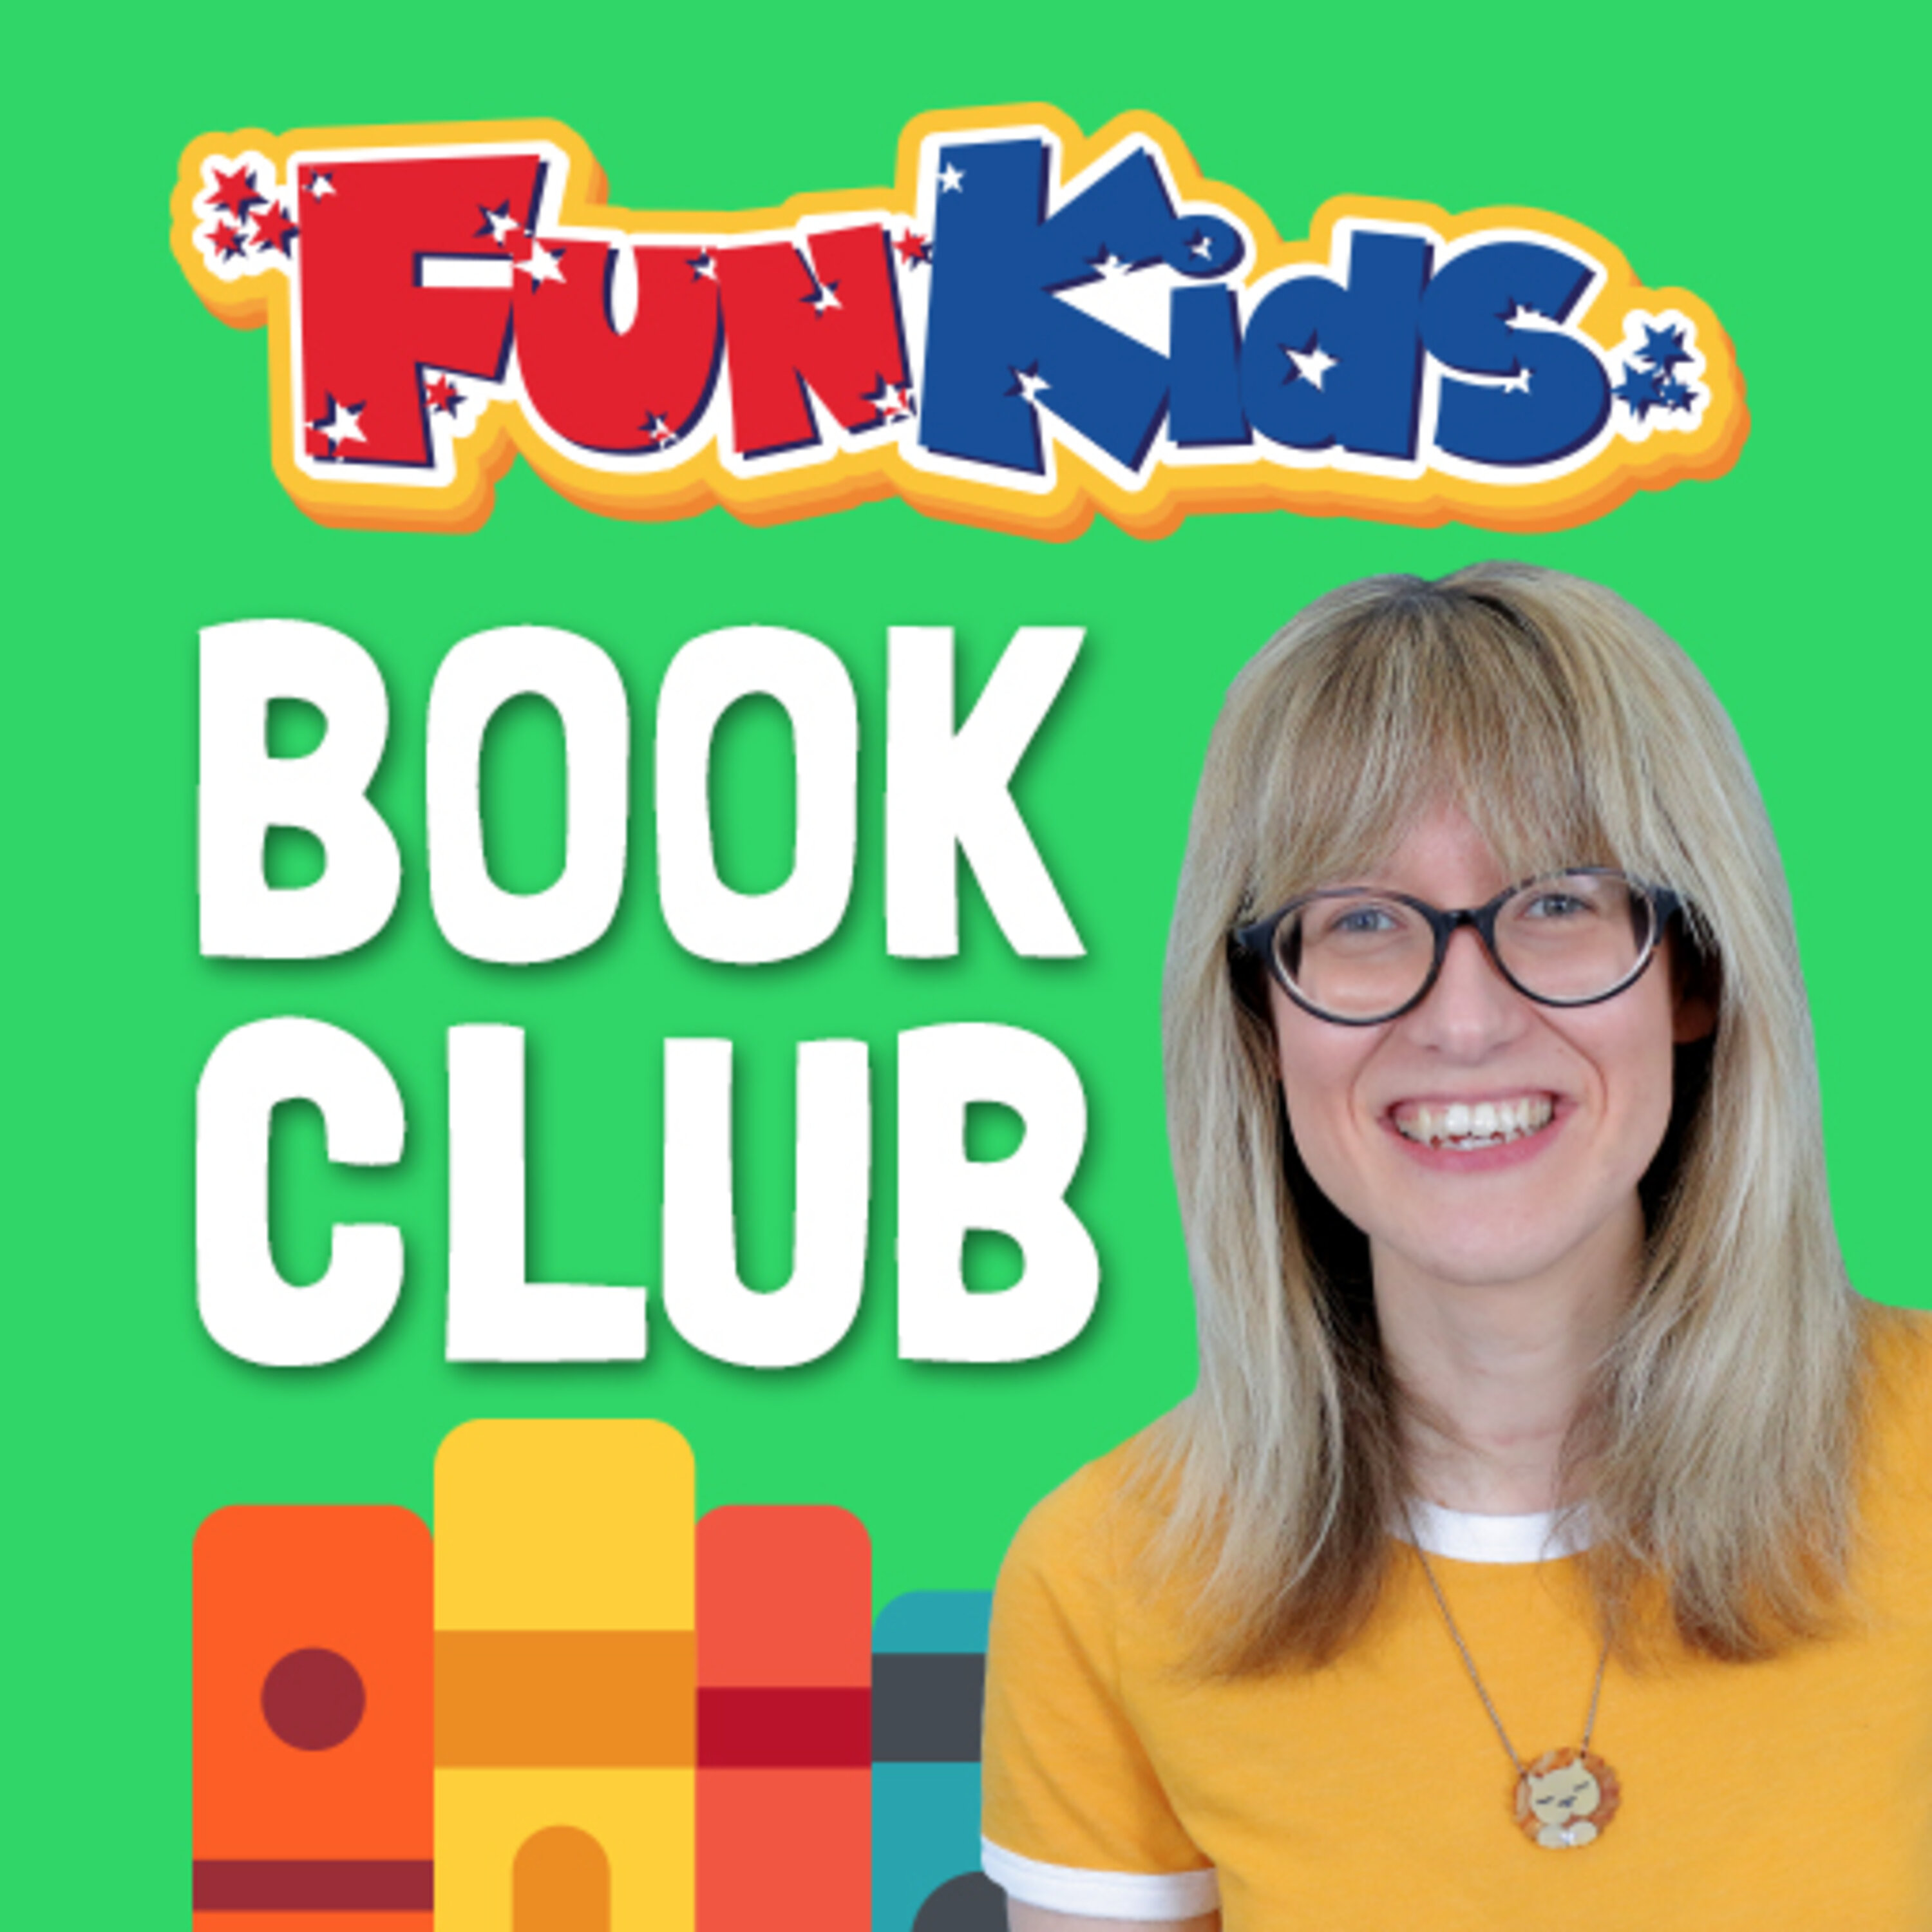 Hear the Book Club for Kids podcast from USA!